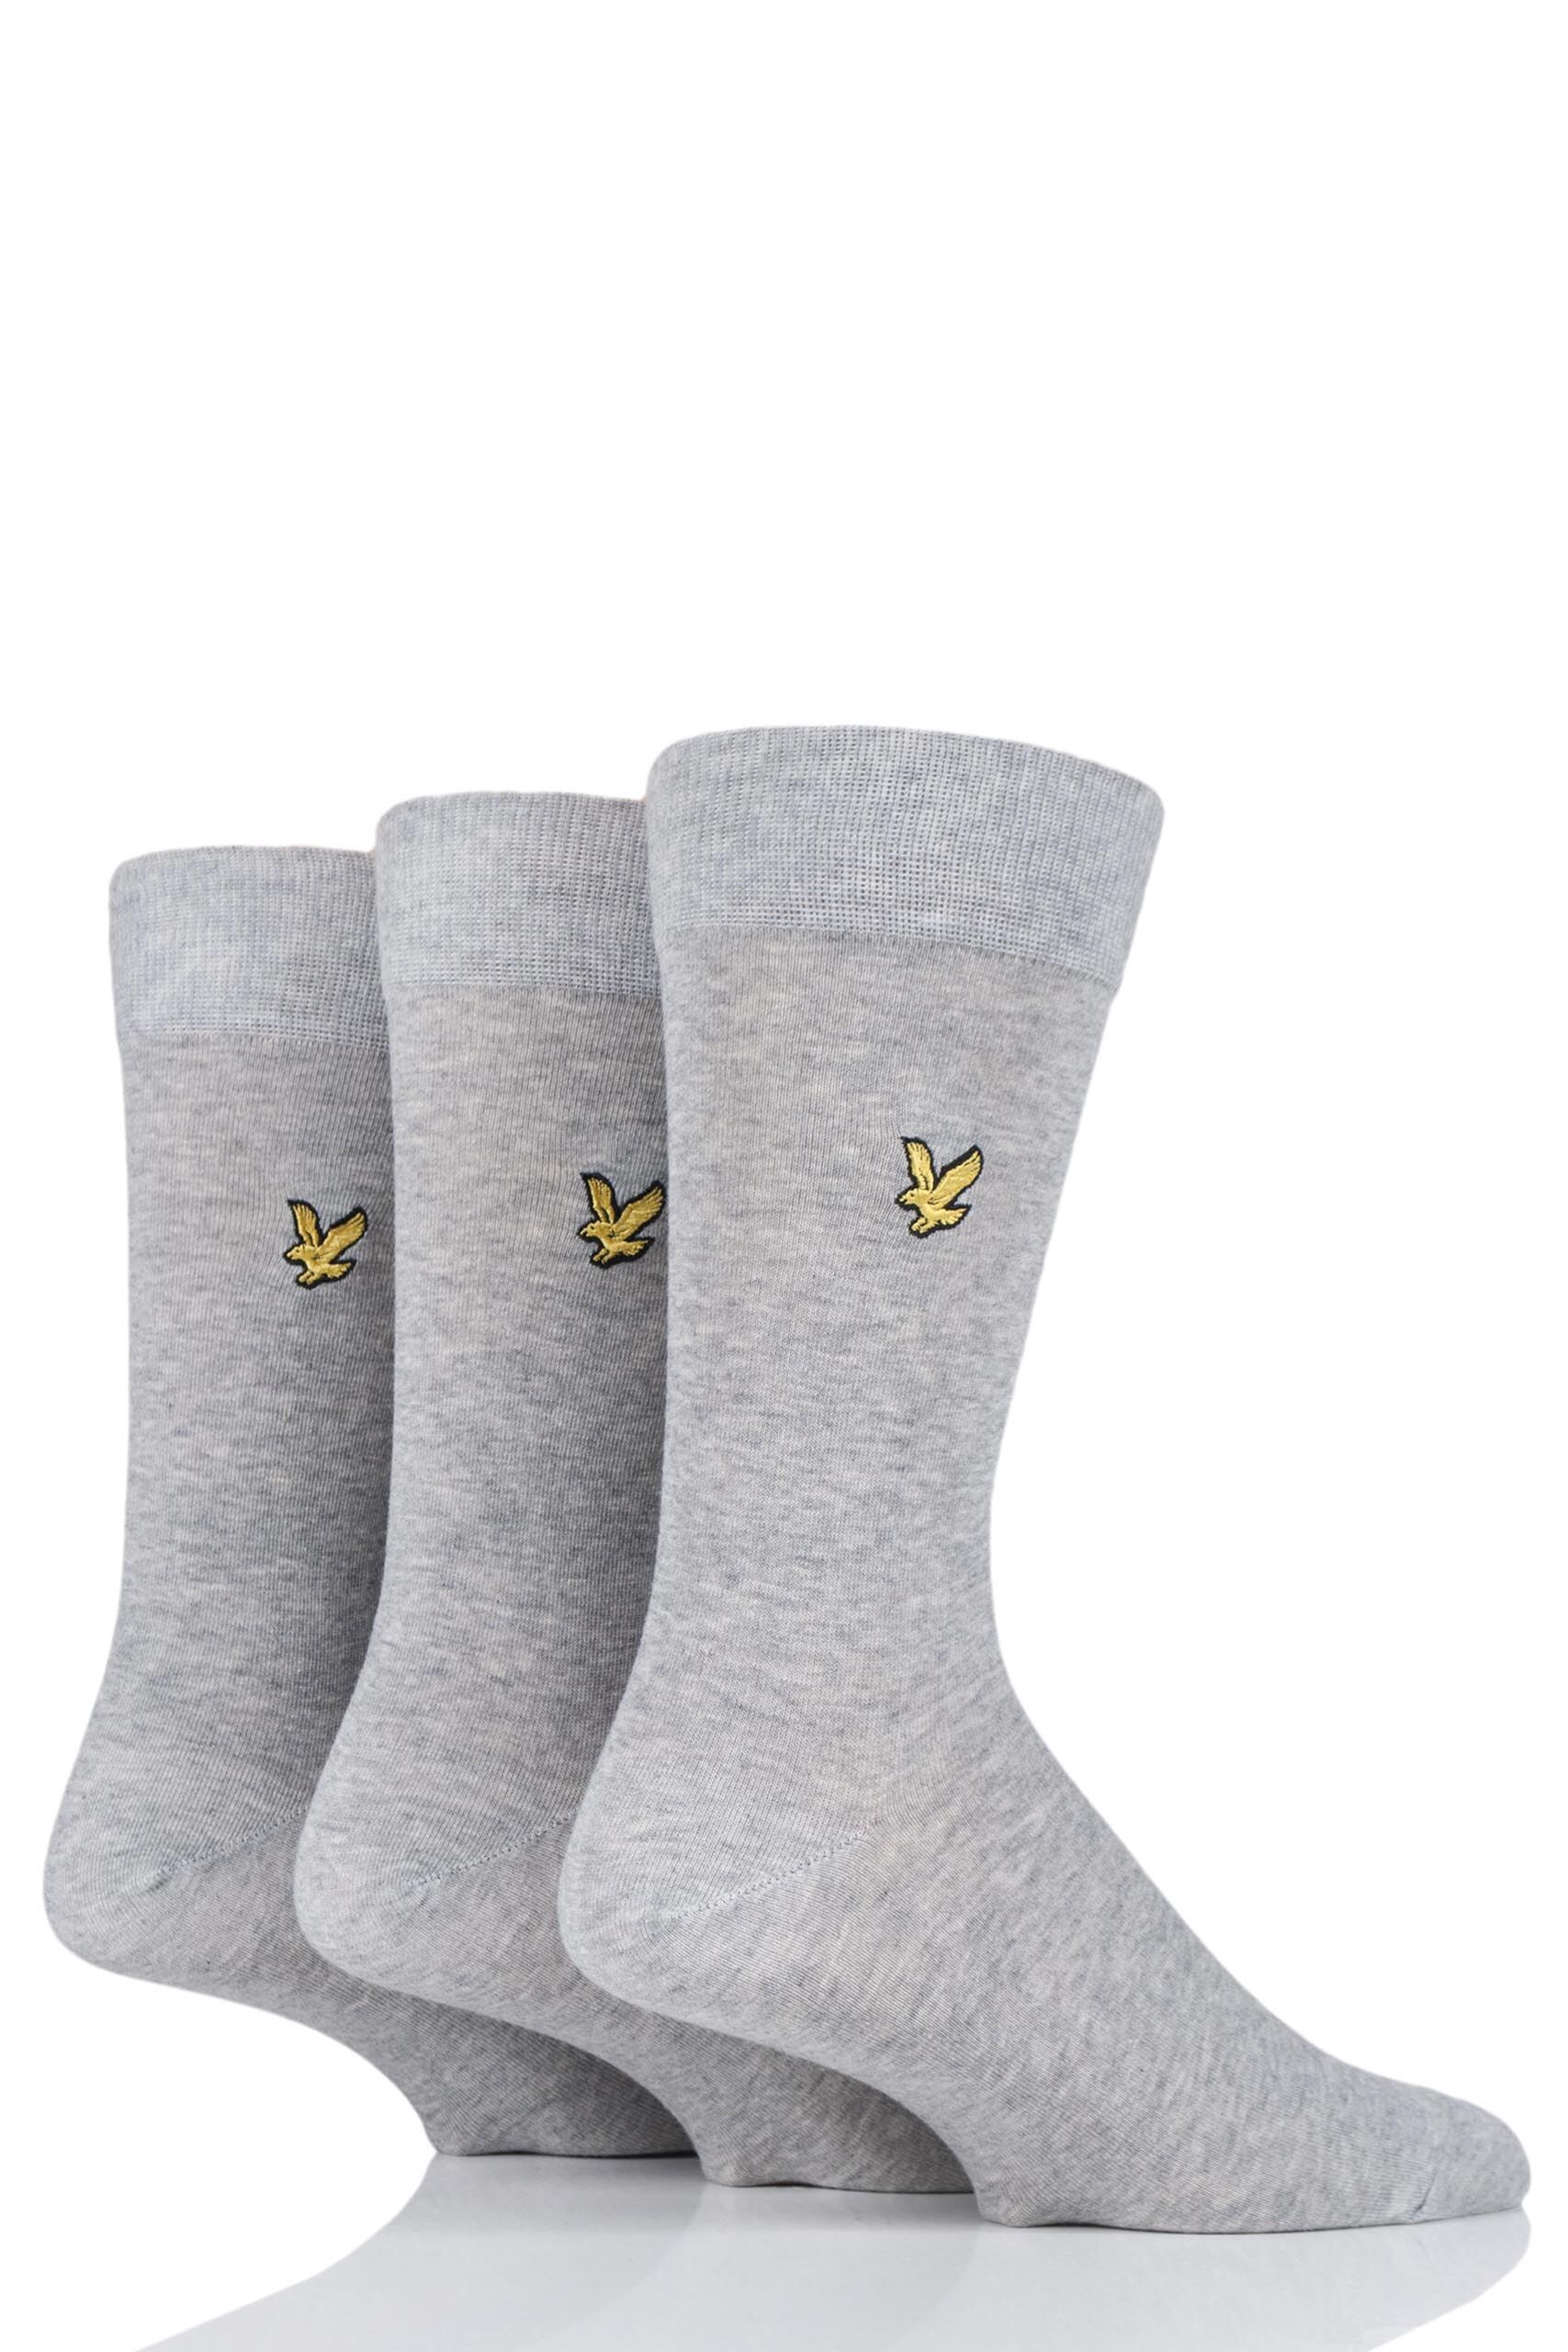 Image of 3 Pair Grey Angus Eagle Embroidery Cotton Socks Men's 7-11 Mens - Lyle & Scott